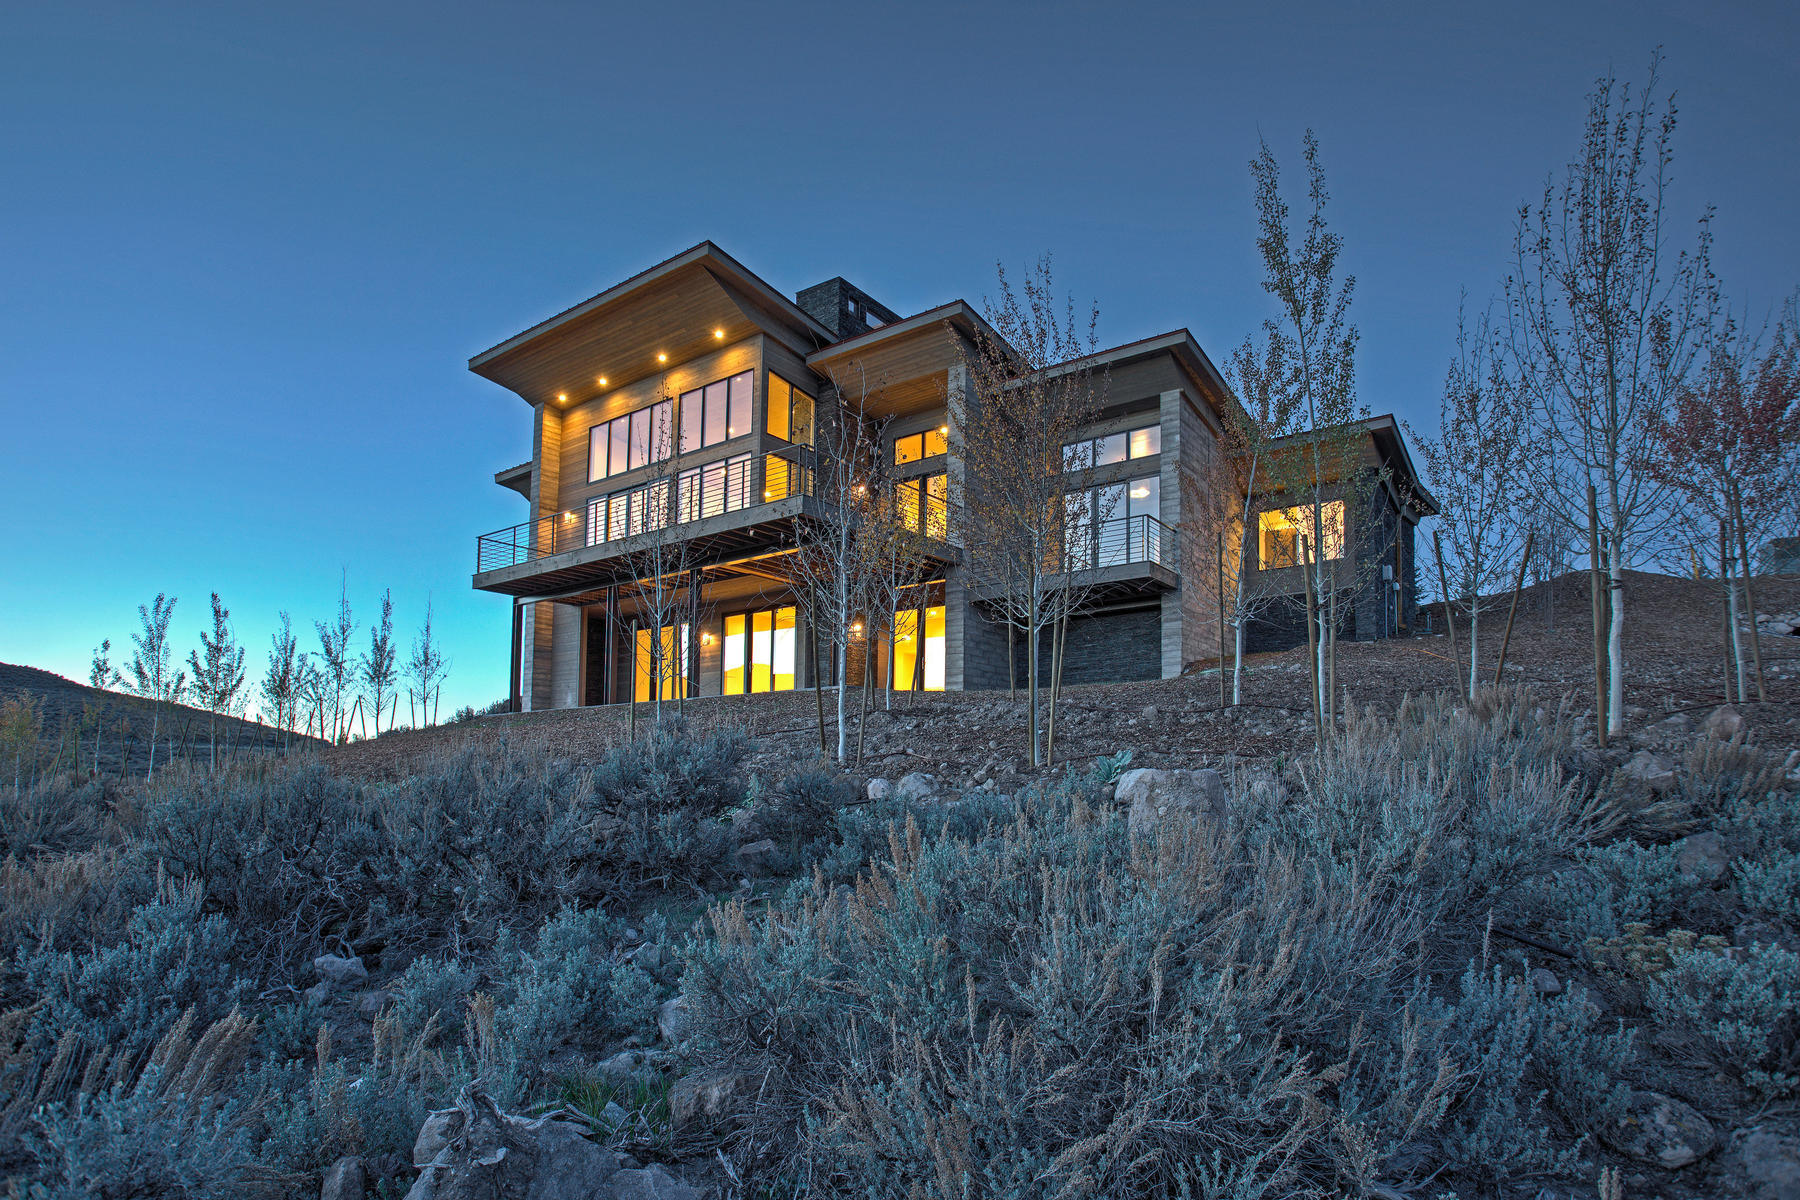 Single Family Home for Sale at Modern Luxury In Your Mountain Escape - Promontory 6699 Golden Bear Loop West Park City, Utah, 84098 United States